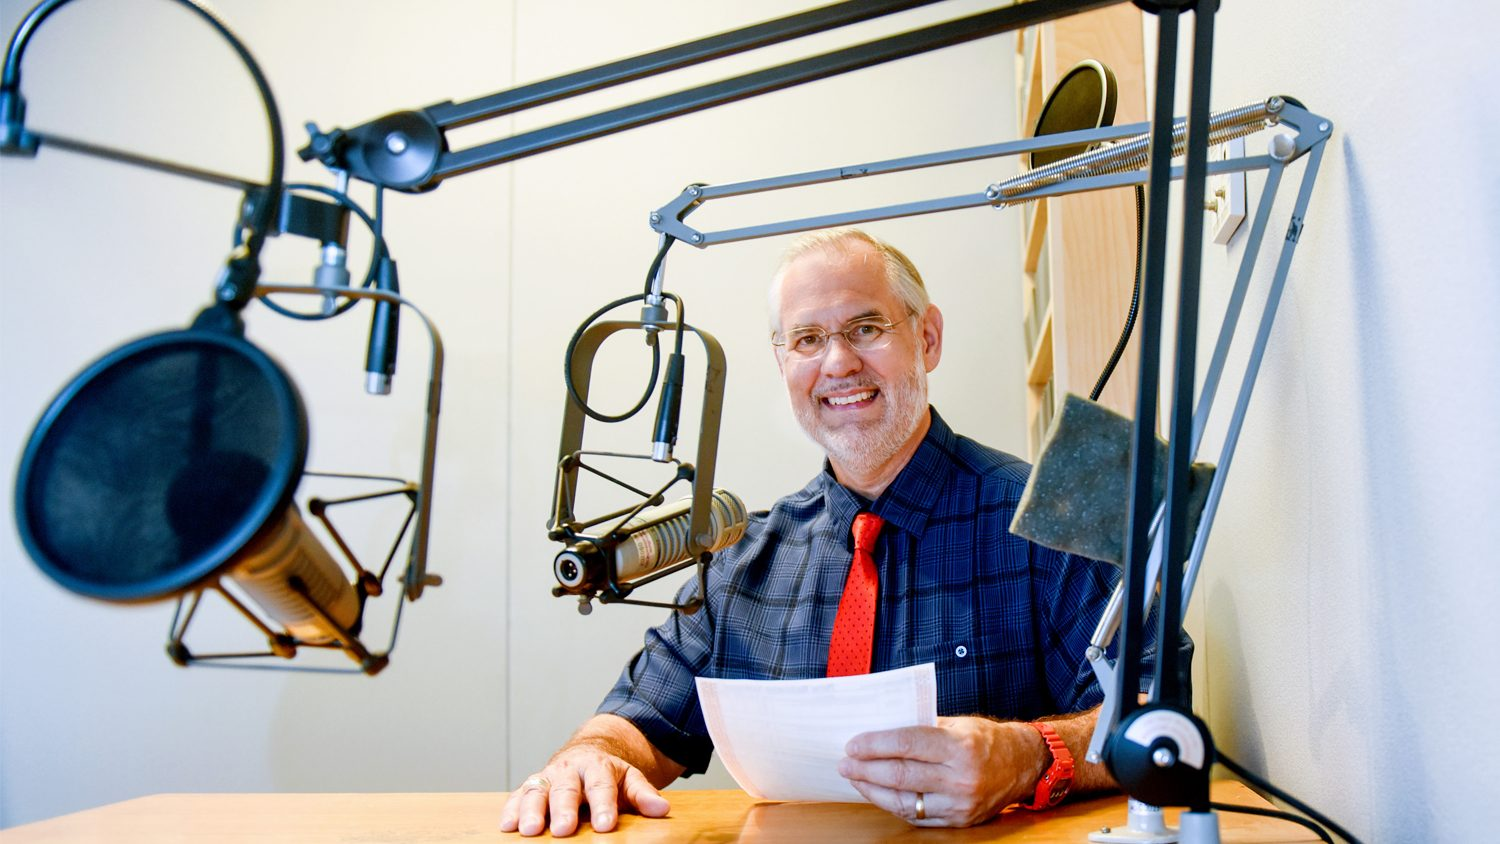 NC State College of Agriculture and Life Sciences professor Dr. Mike Walden working in a recording studio.